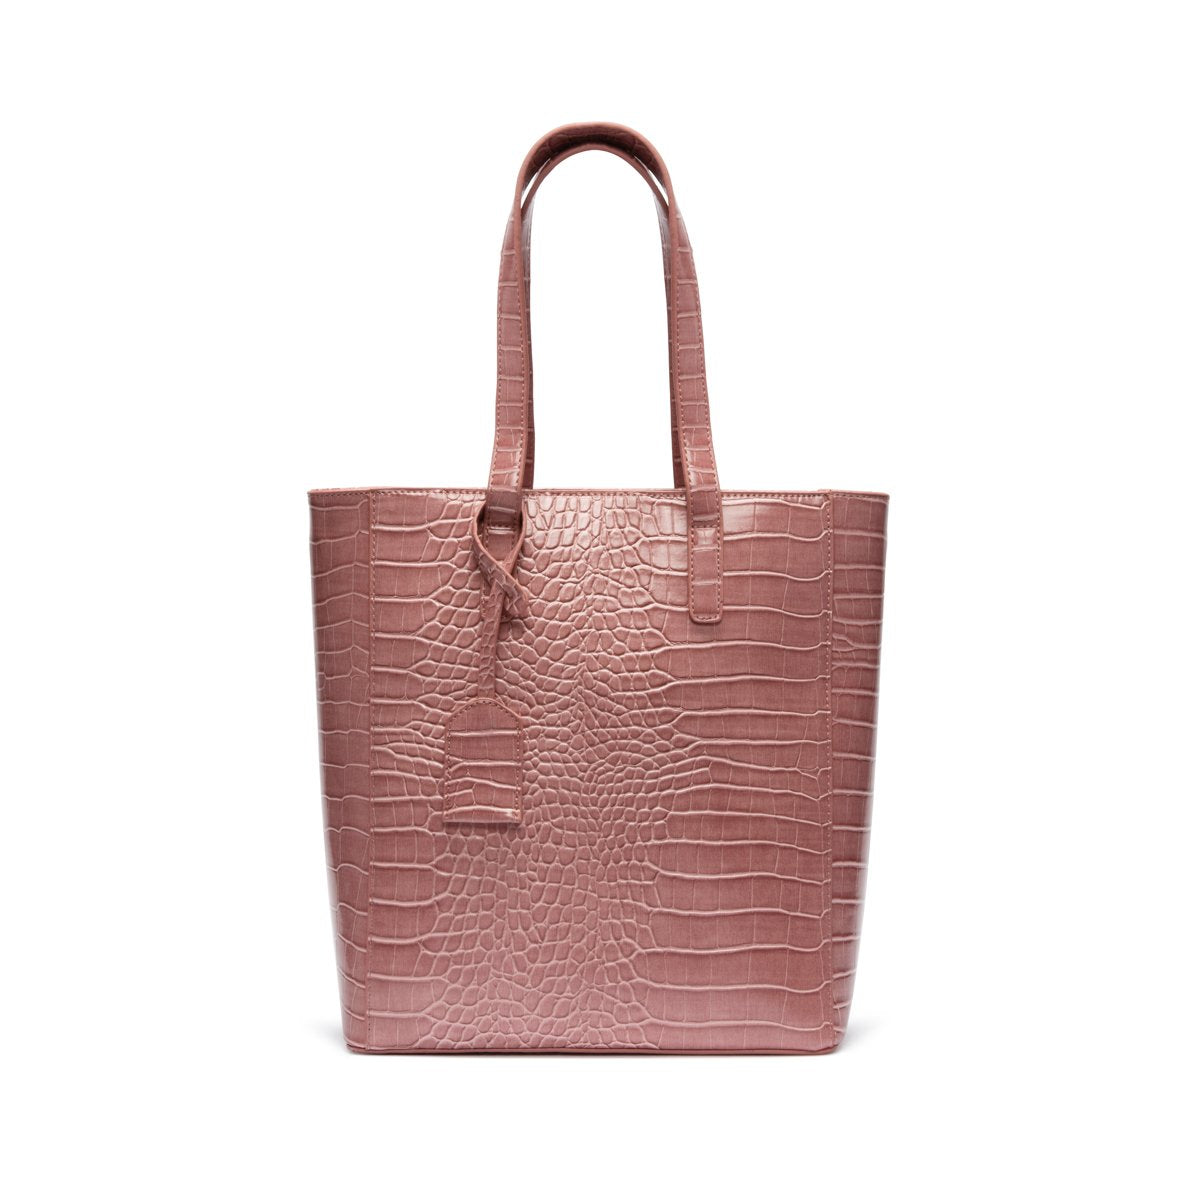 Cora Tote Bag (Dusky Rose/Rose Gold)